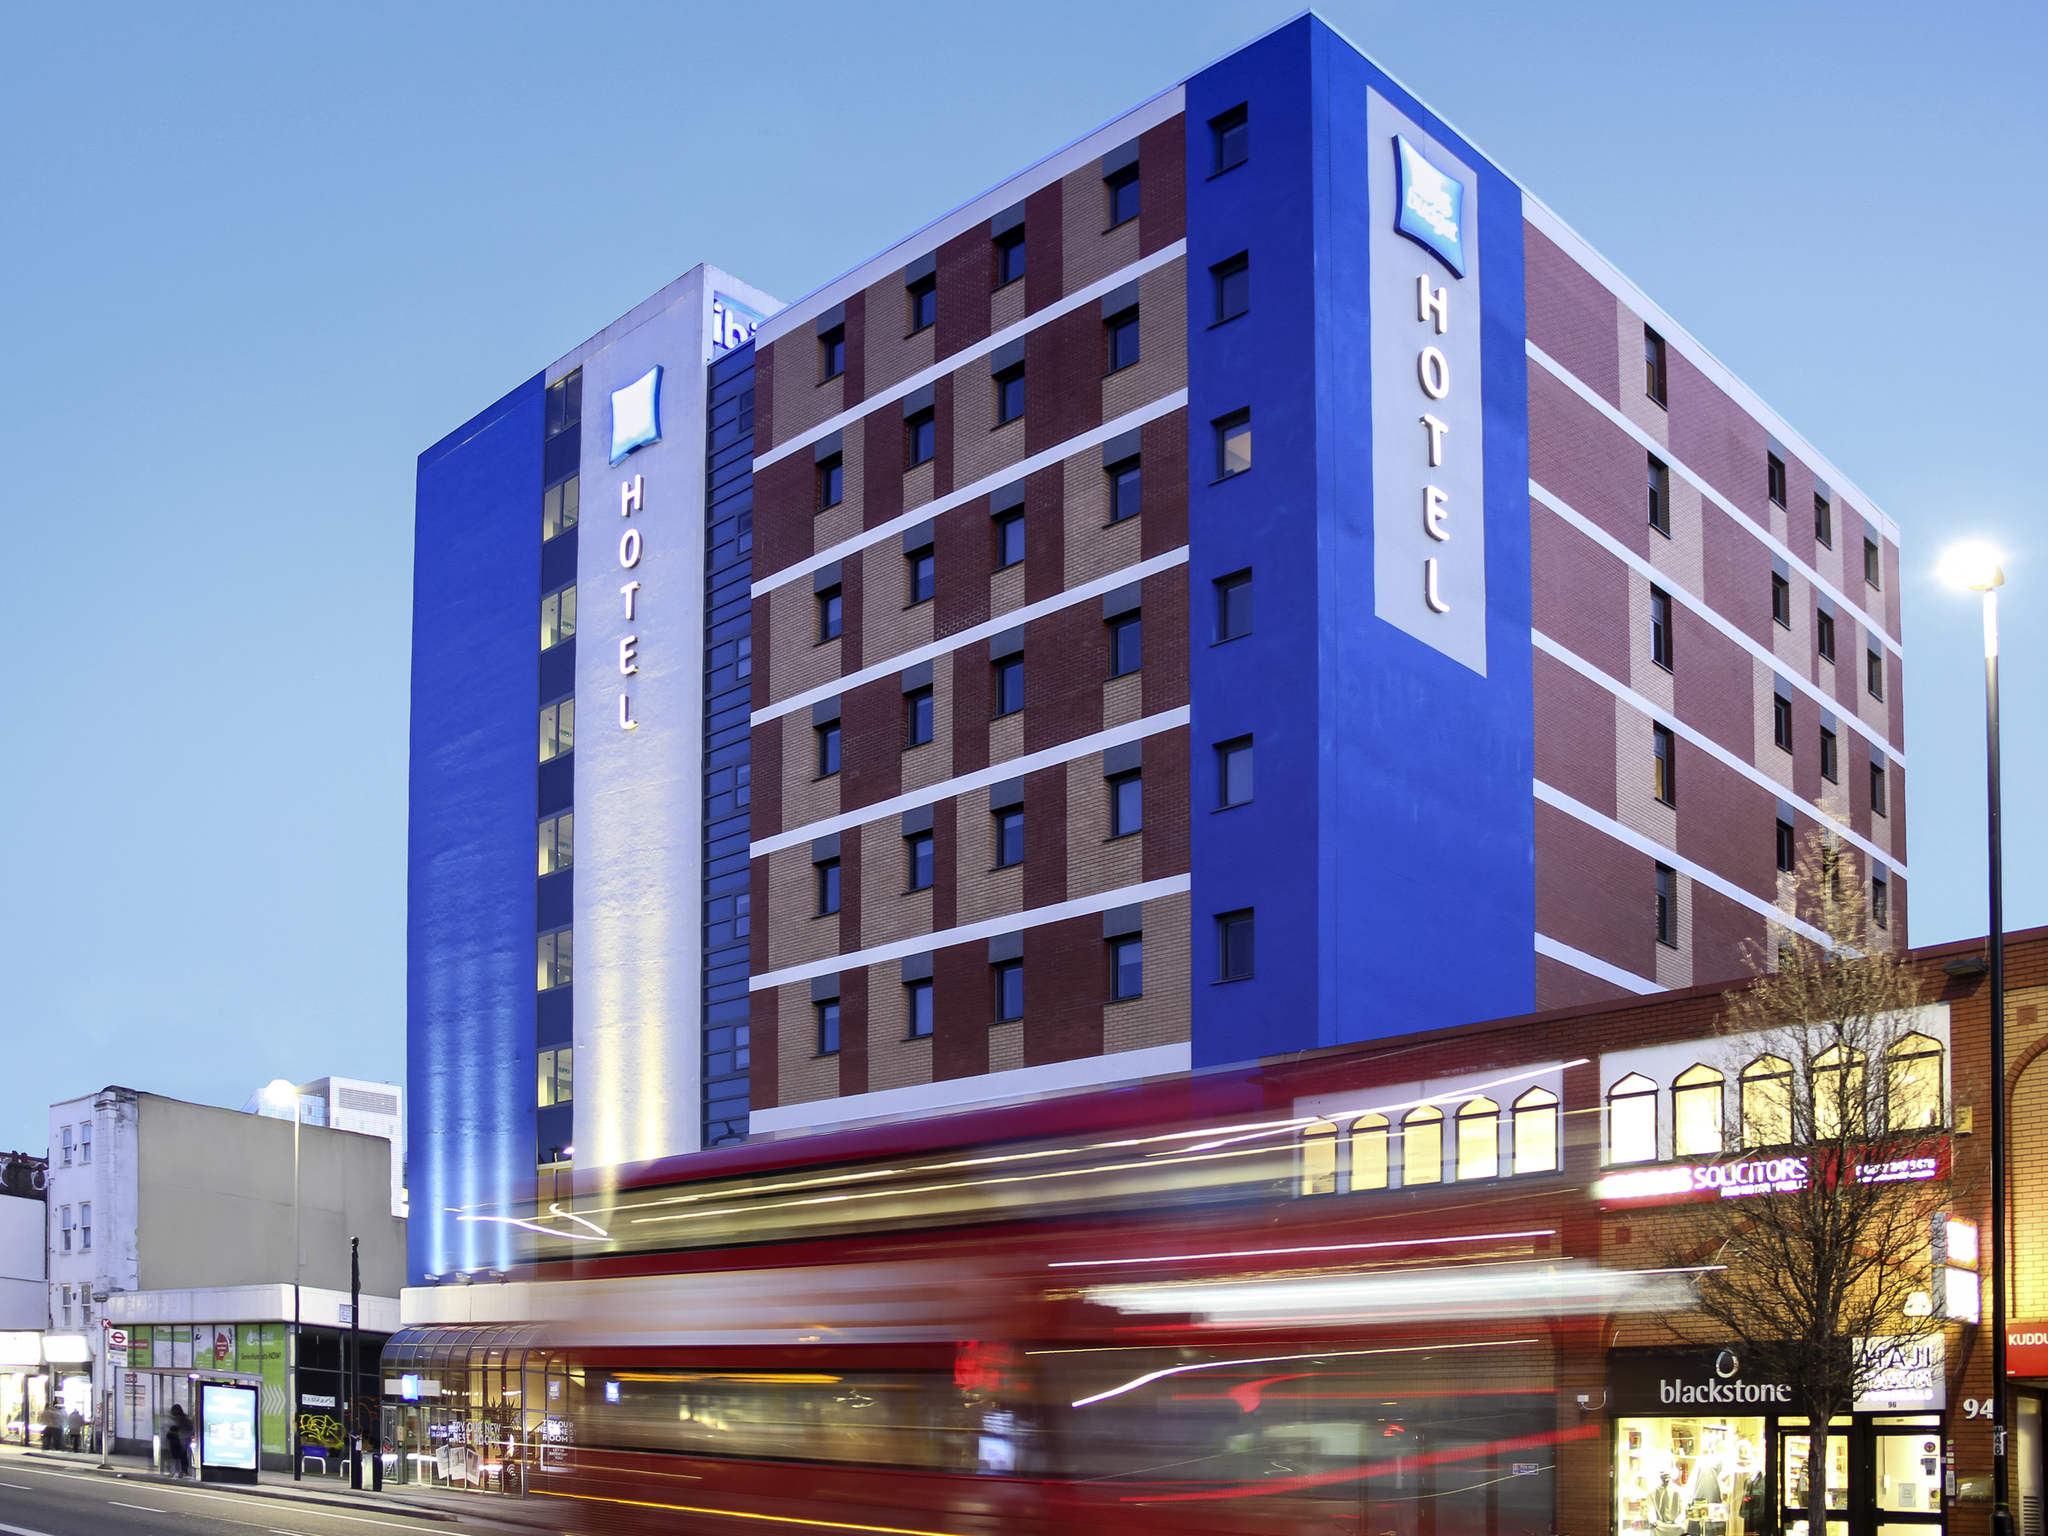 Hotell – Ibis budget London Whitechapel - Brick Lane